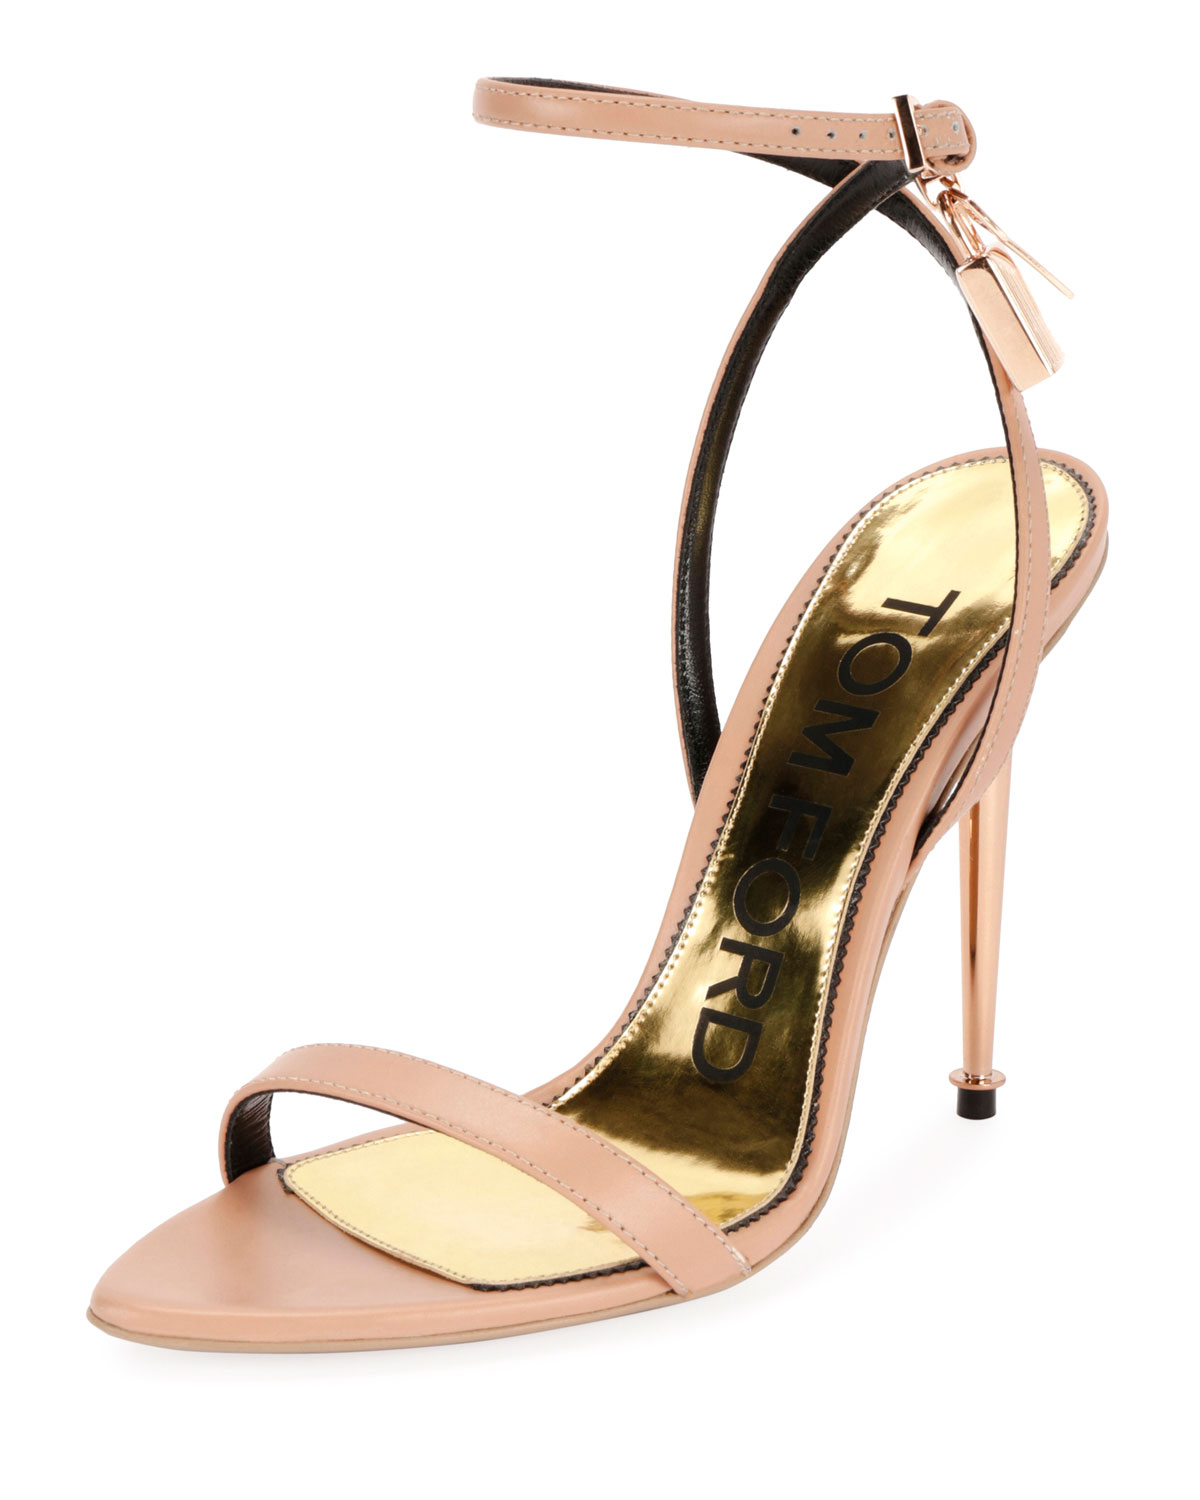 574fccac2f2 TOM FORD Lock Ankle-Wrap Soft Calf Leather Sandal